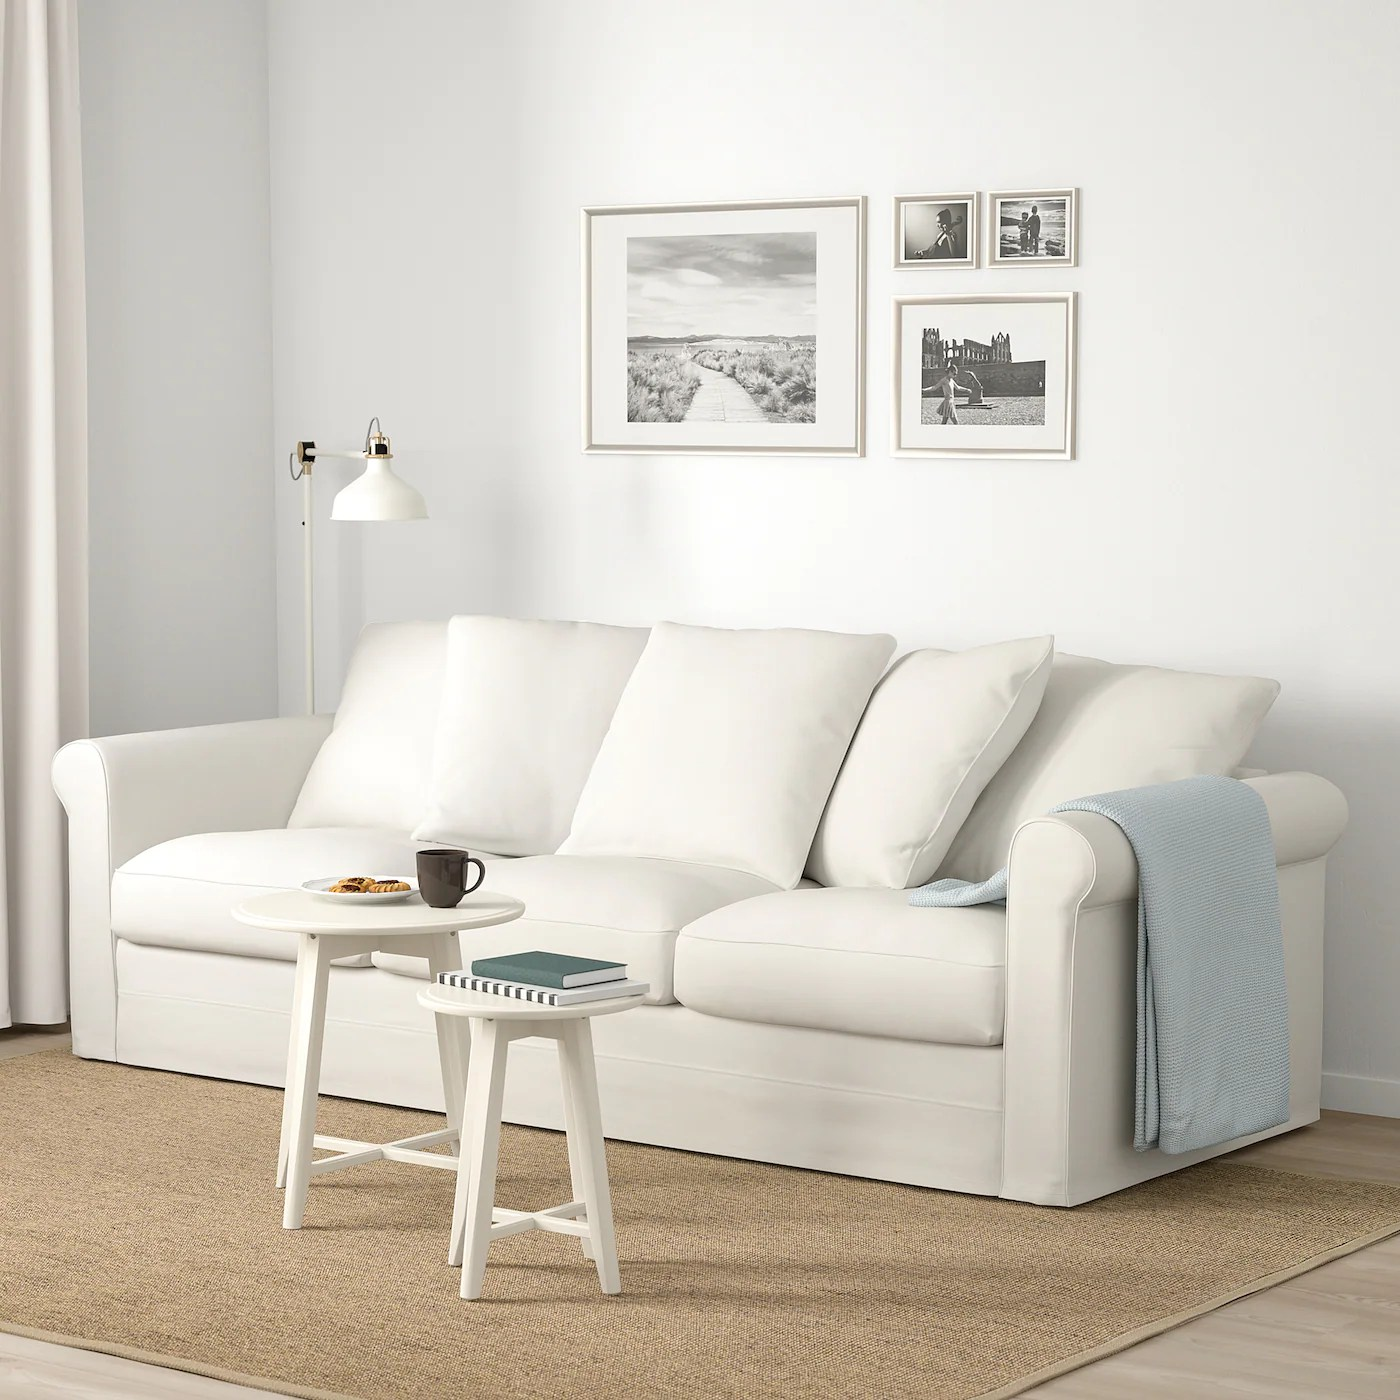 The best way to tell the loveseat and sofa. GRÖNLID 3-seat sofa - Inseros white - IKEA